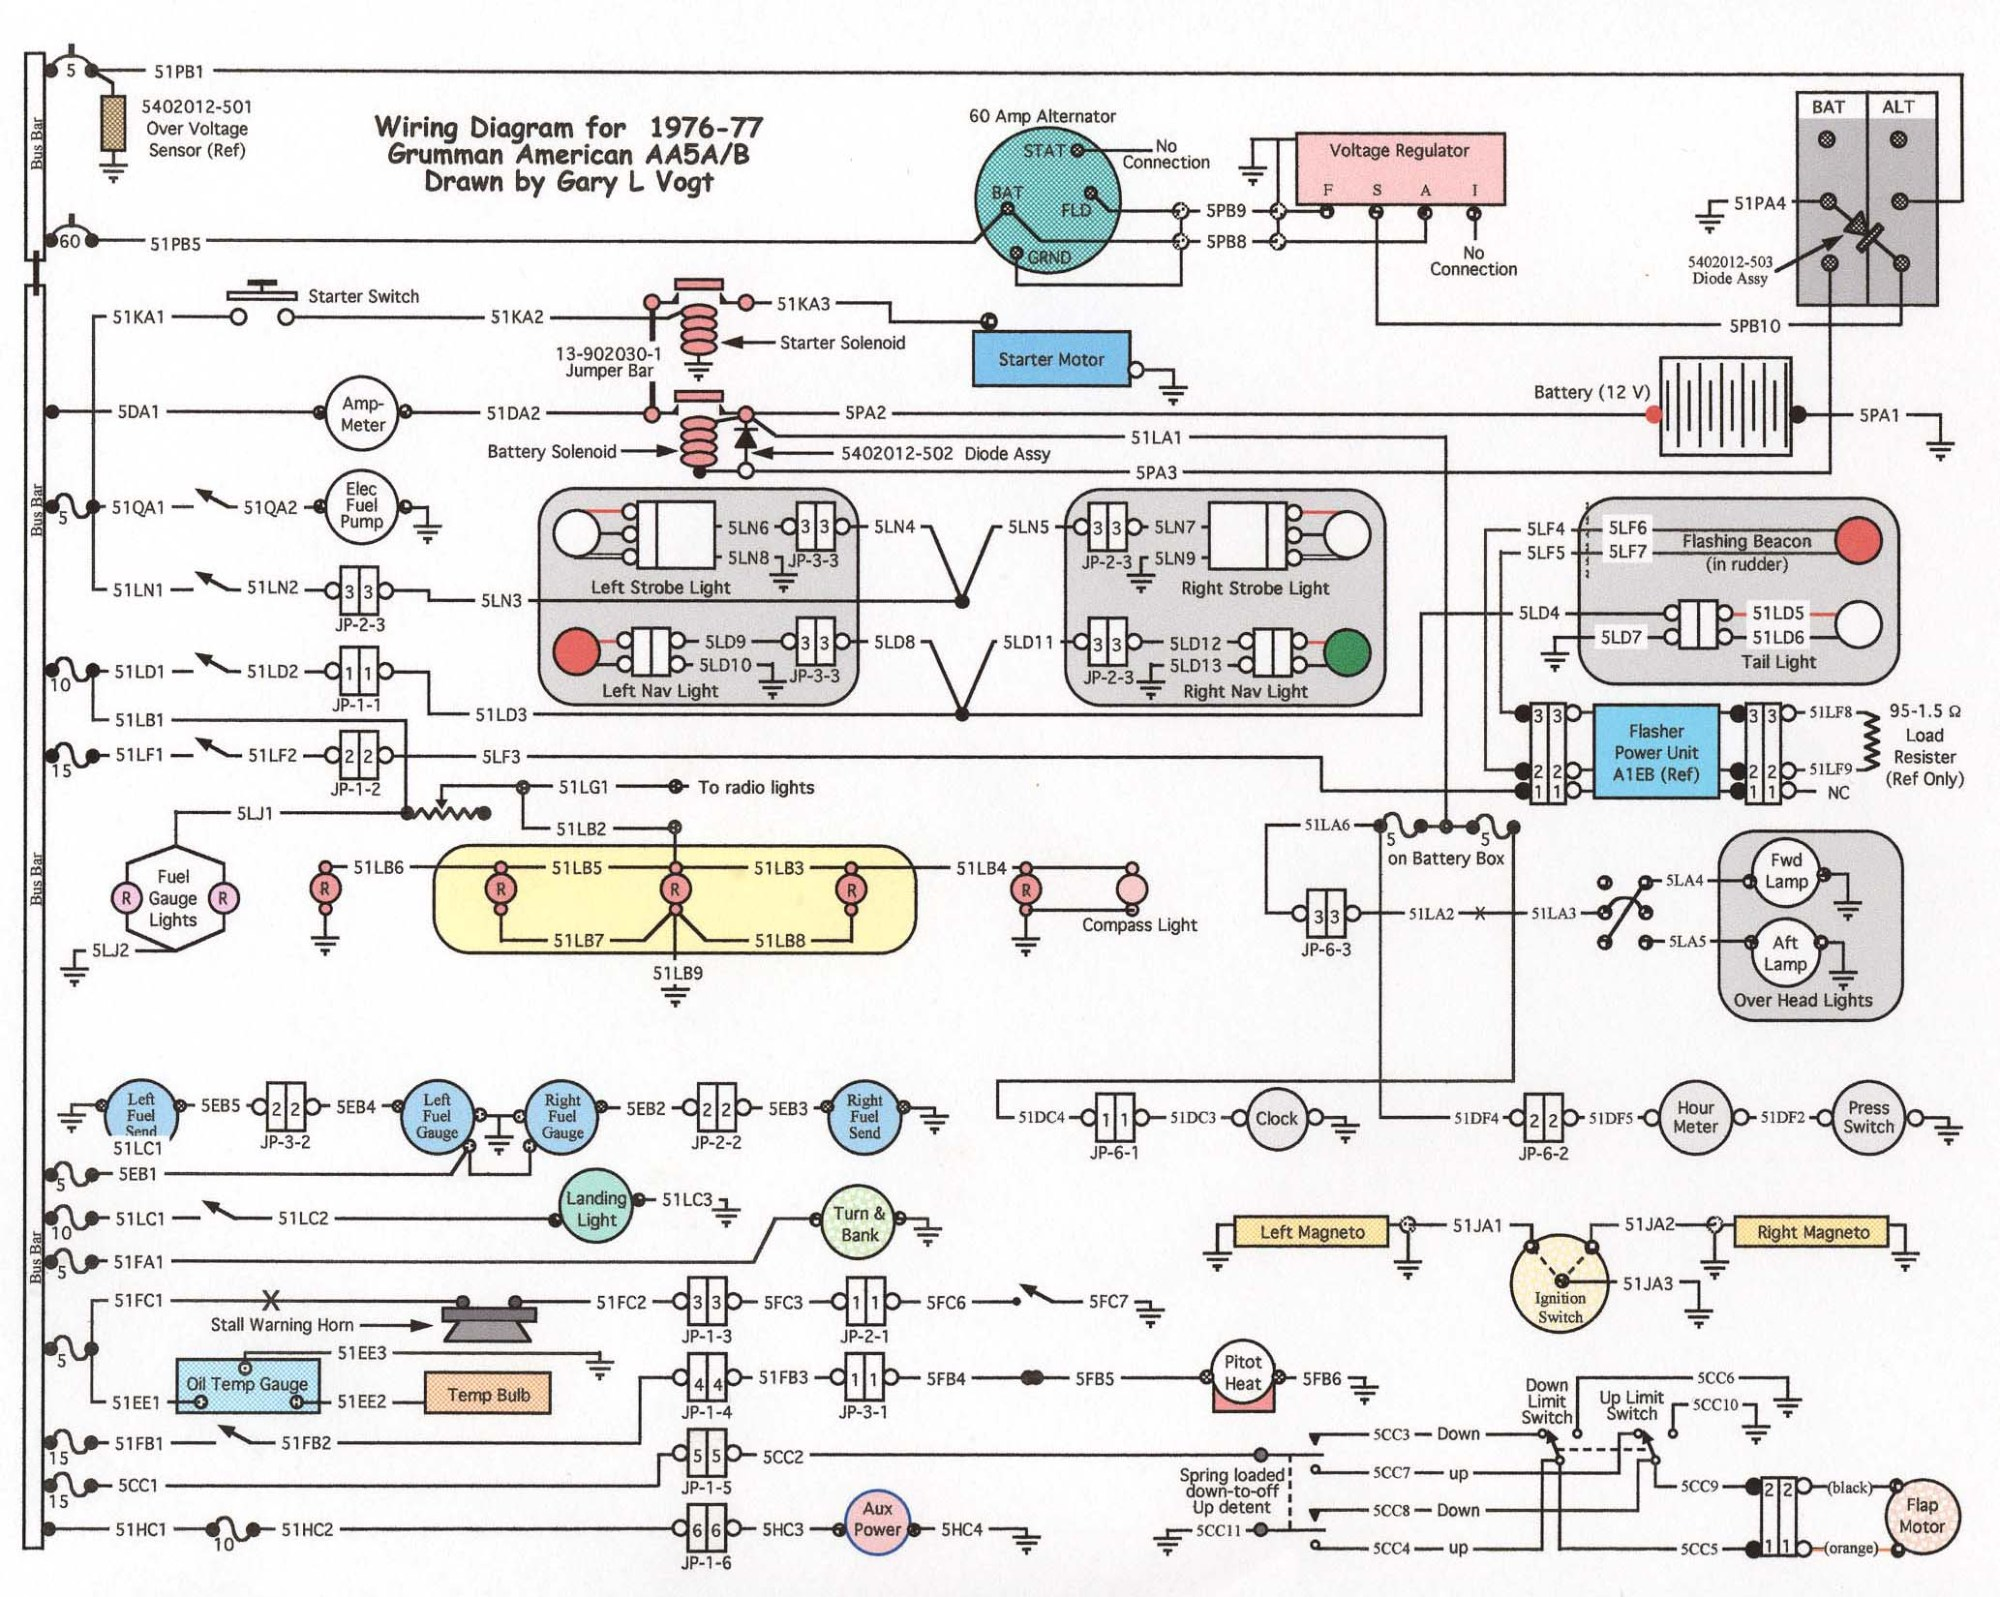 hight resolution of llv wiring diagram wiring diagram home grumman llv  wiring diagram llv wiring diagram